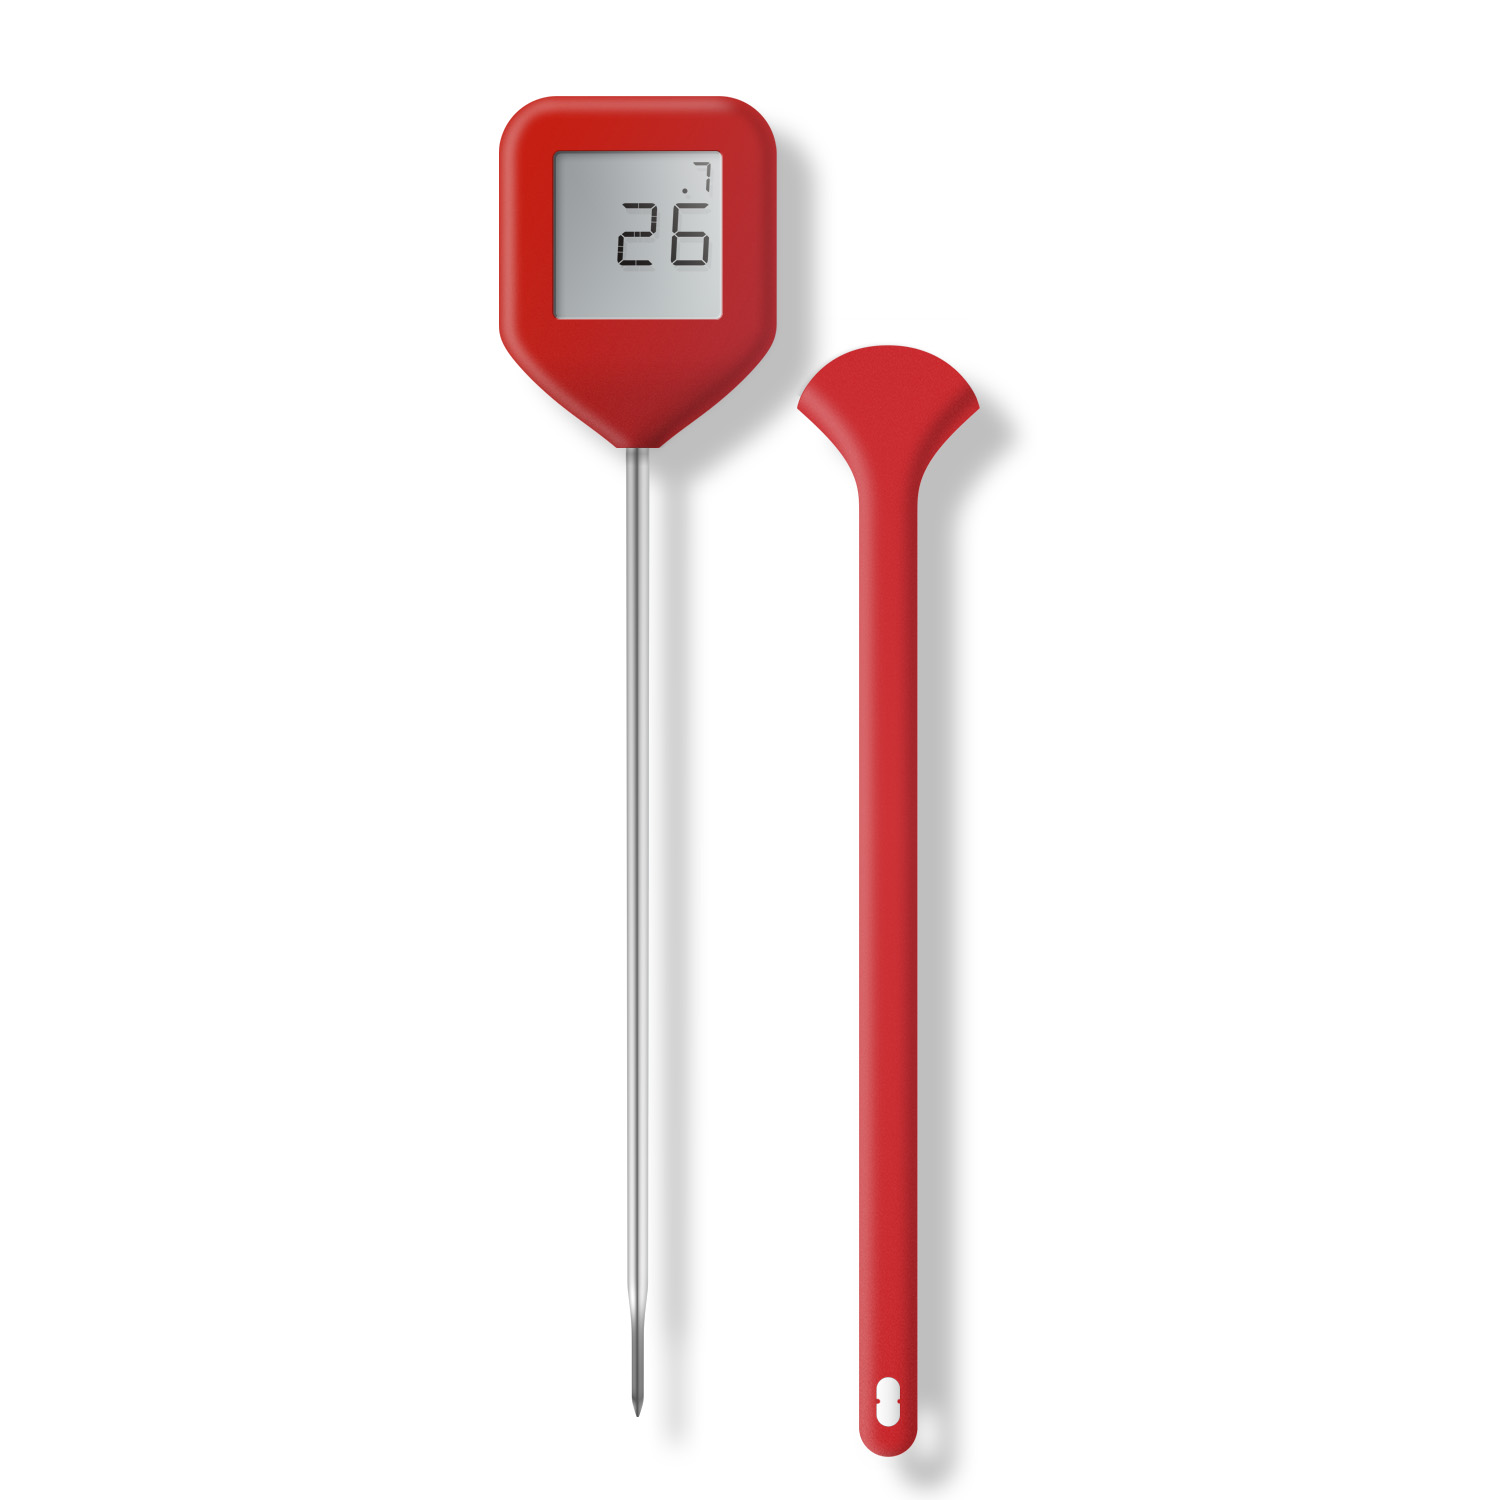 Auo Rotating Display Thermometer